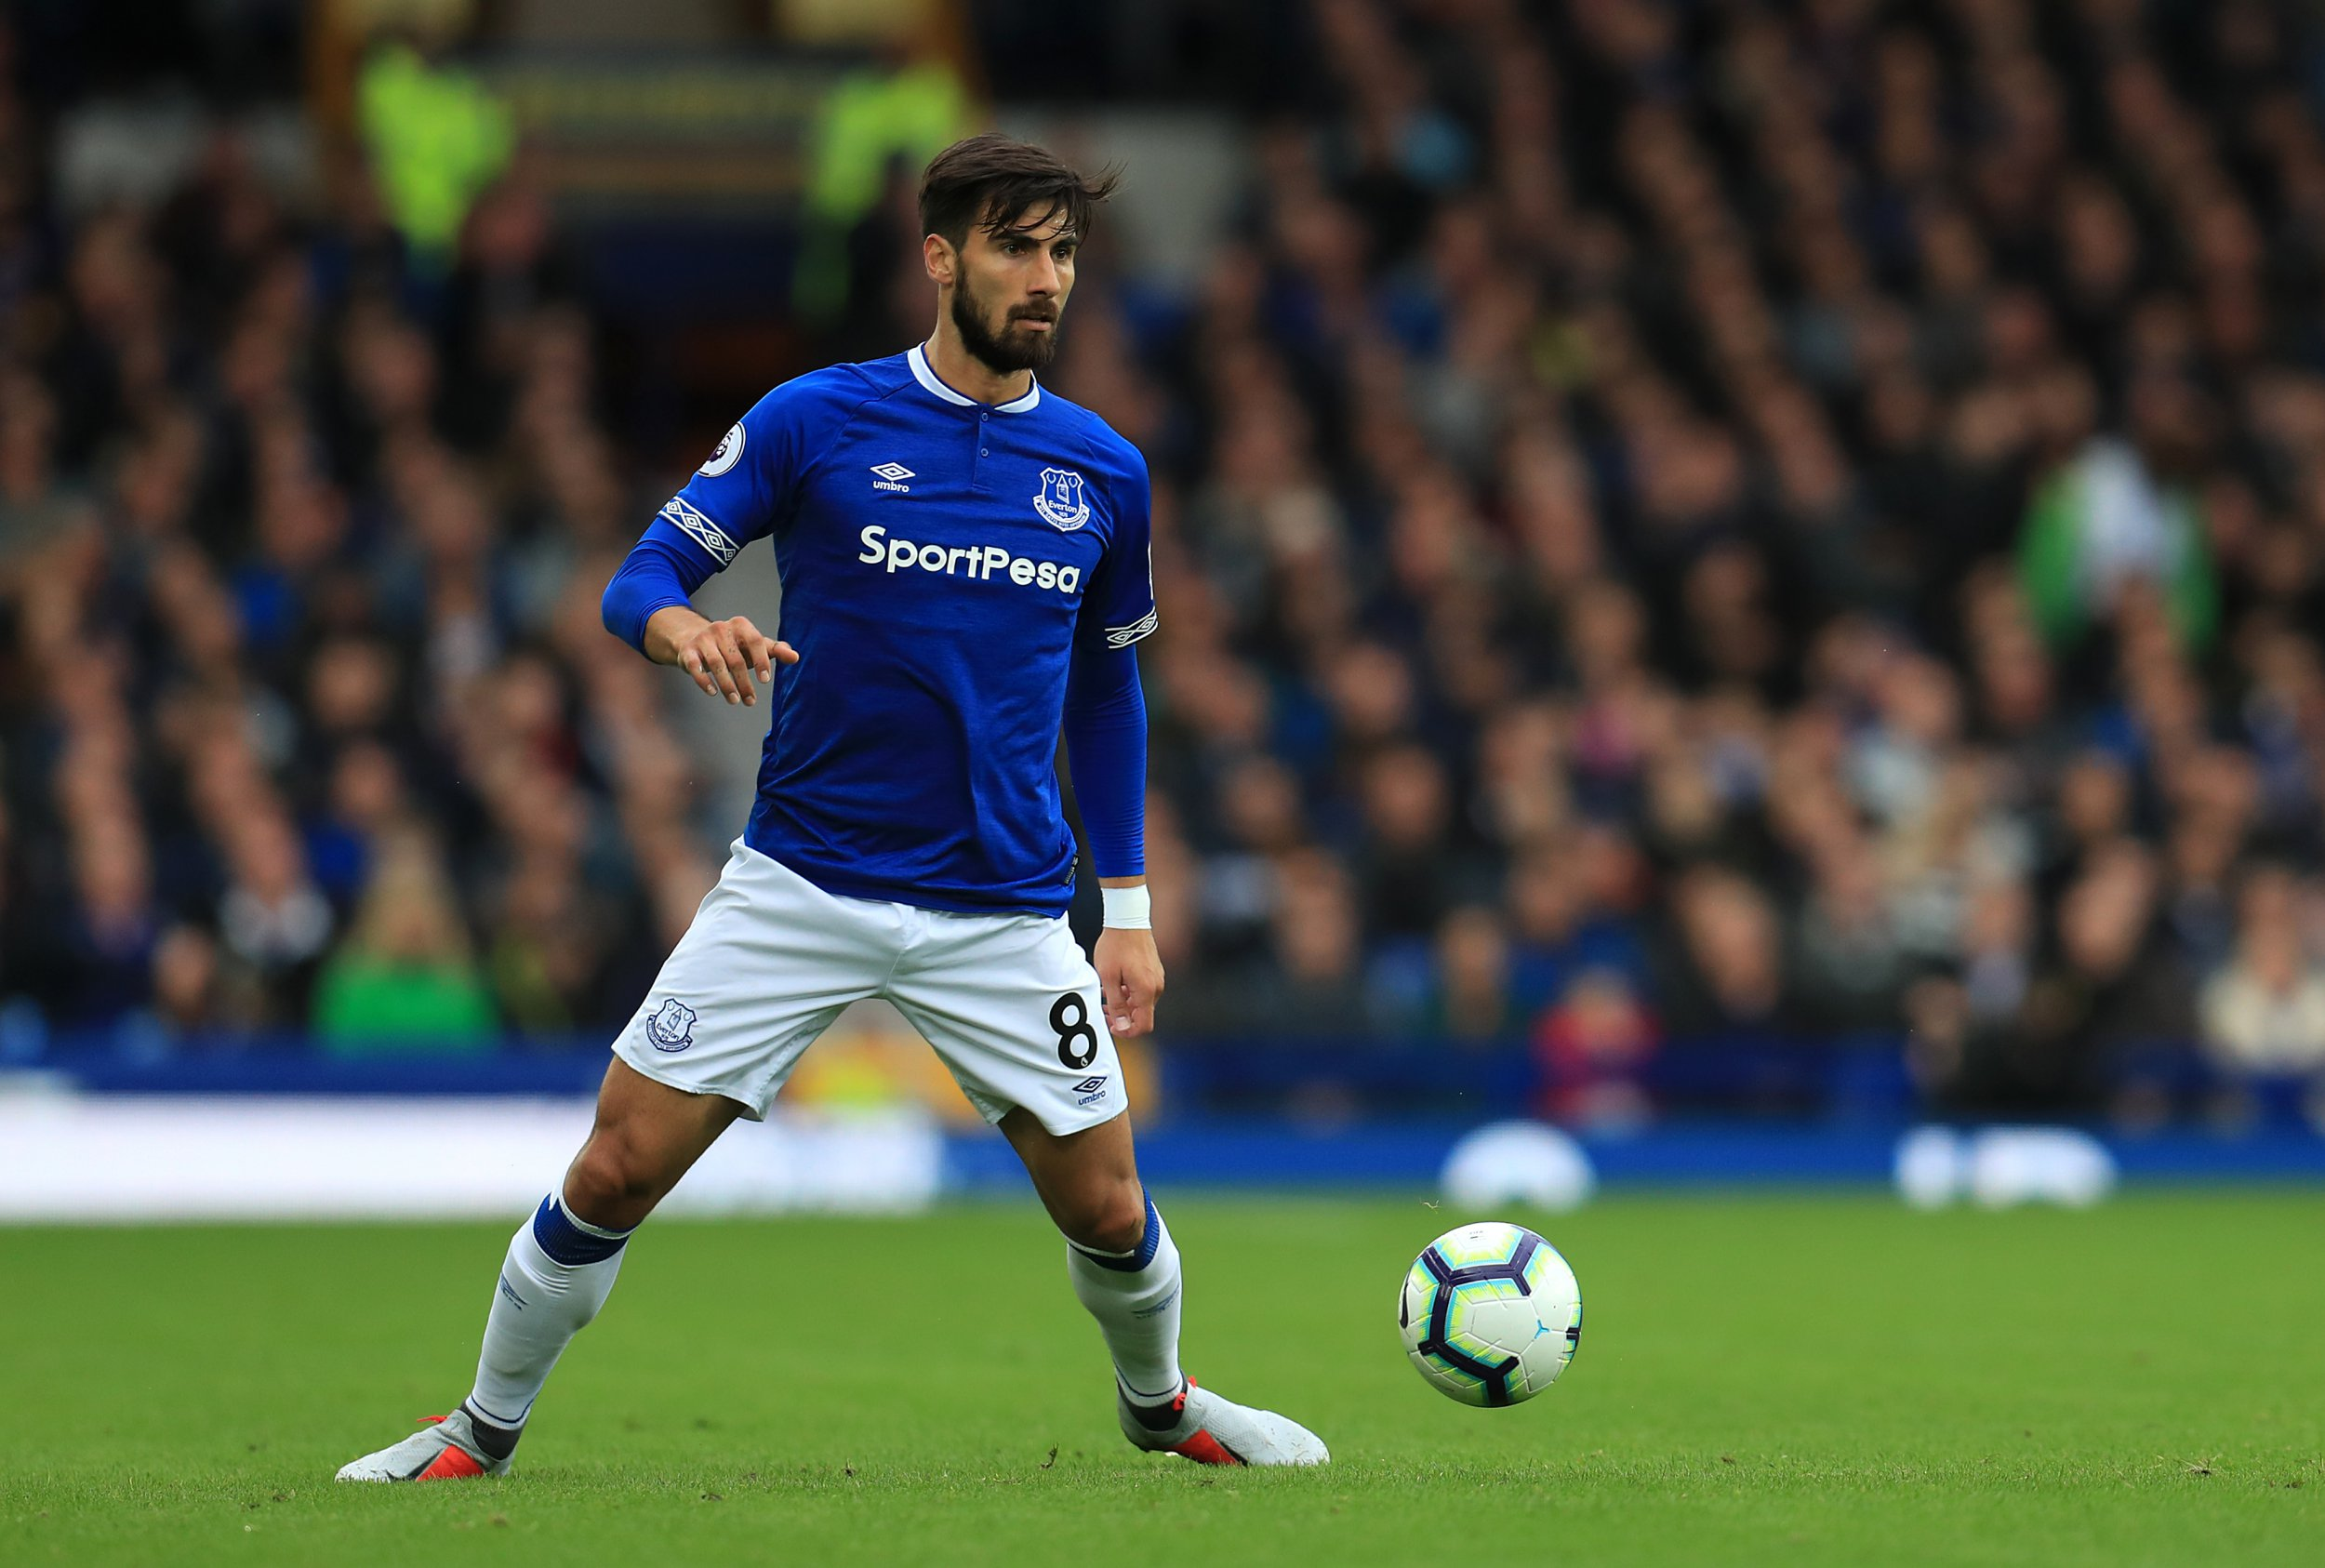 Tottenham agree terms with Everton loanee Andre Gomes ahead of £30m summer move from Barcelona